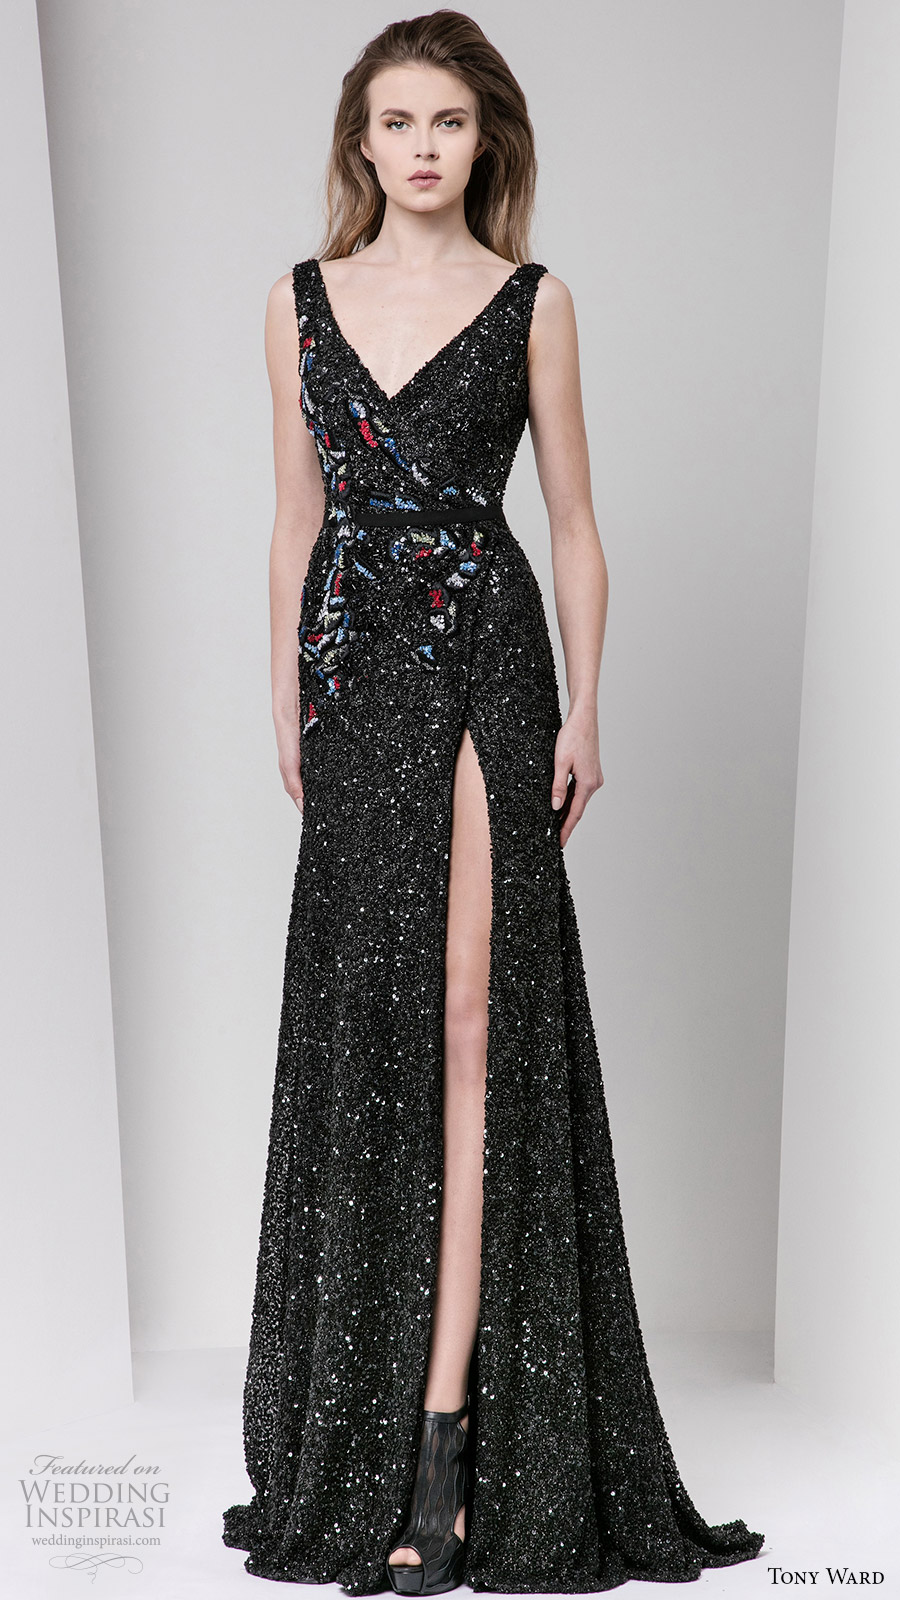 tony ward fall 2016 rtw sleeveless v neck beaded trumpet gown slit black multi color